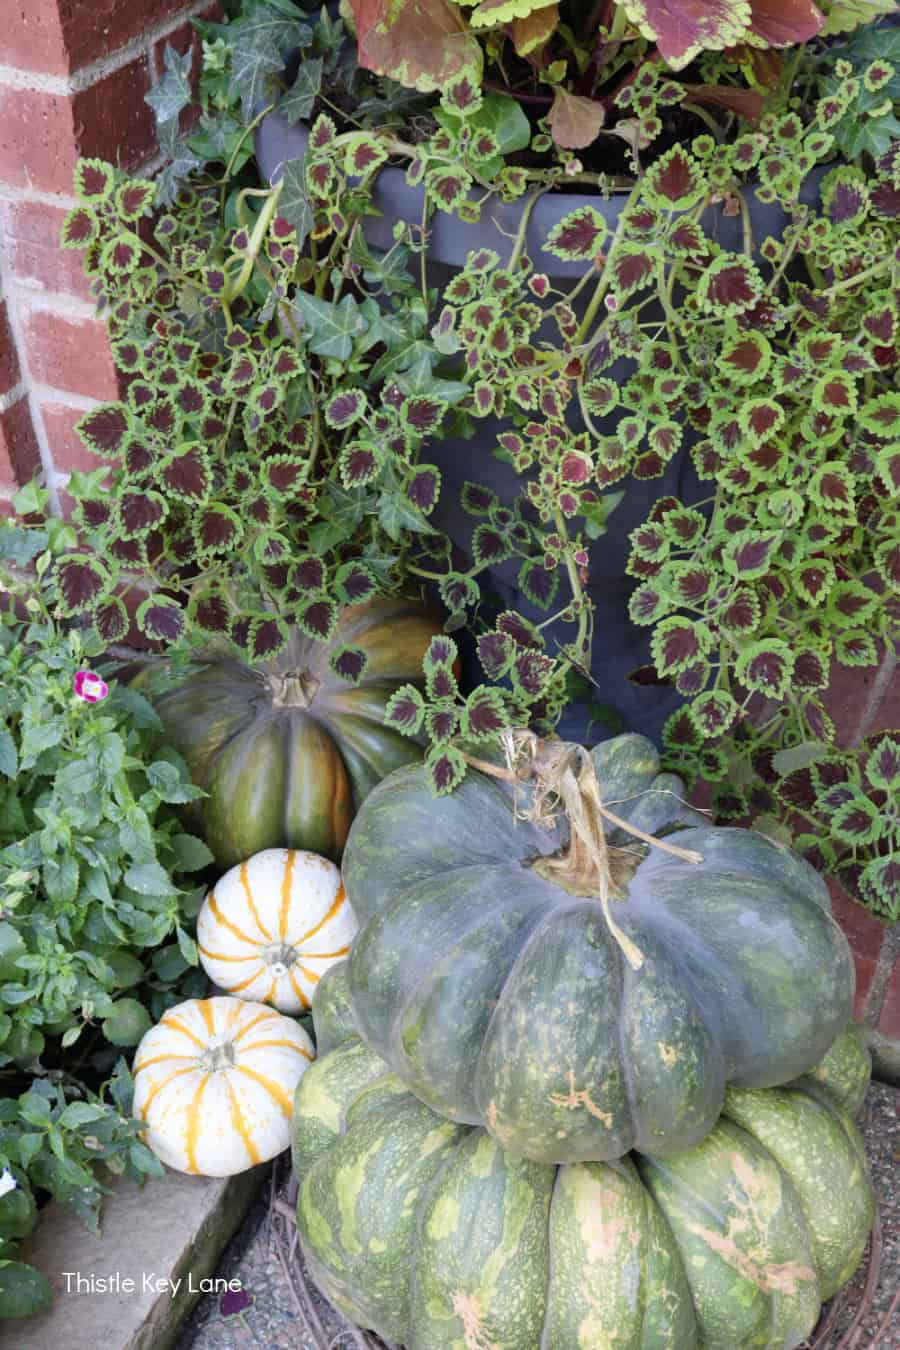 Green and white pumpkins in front of coleus.